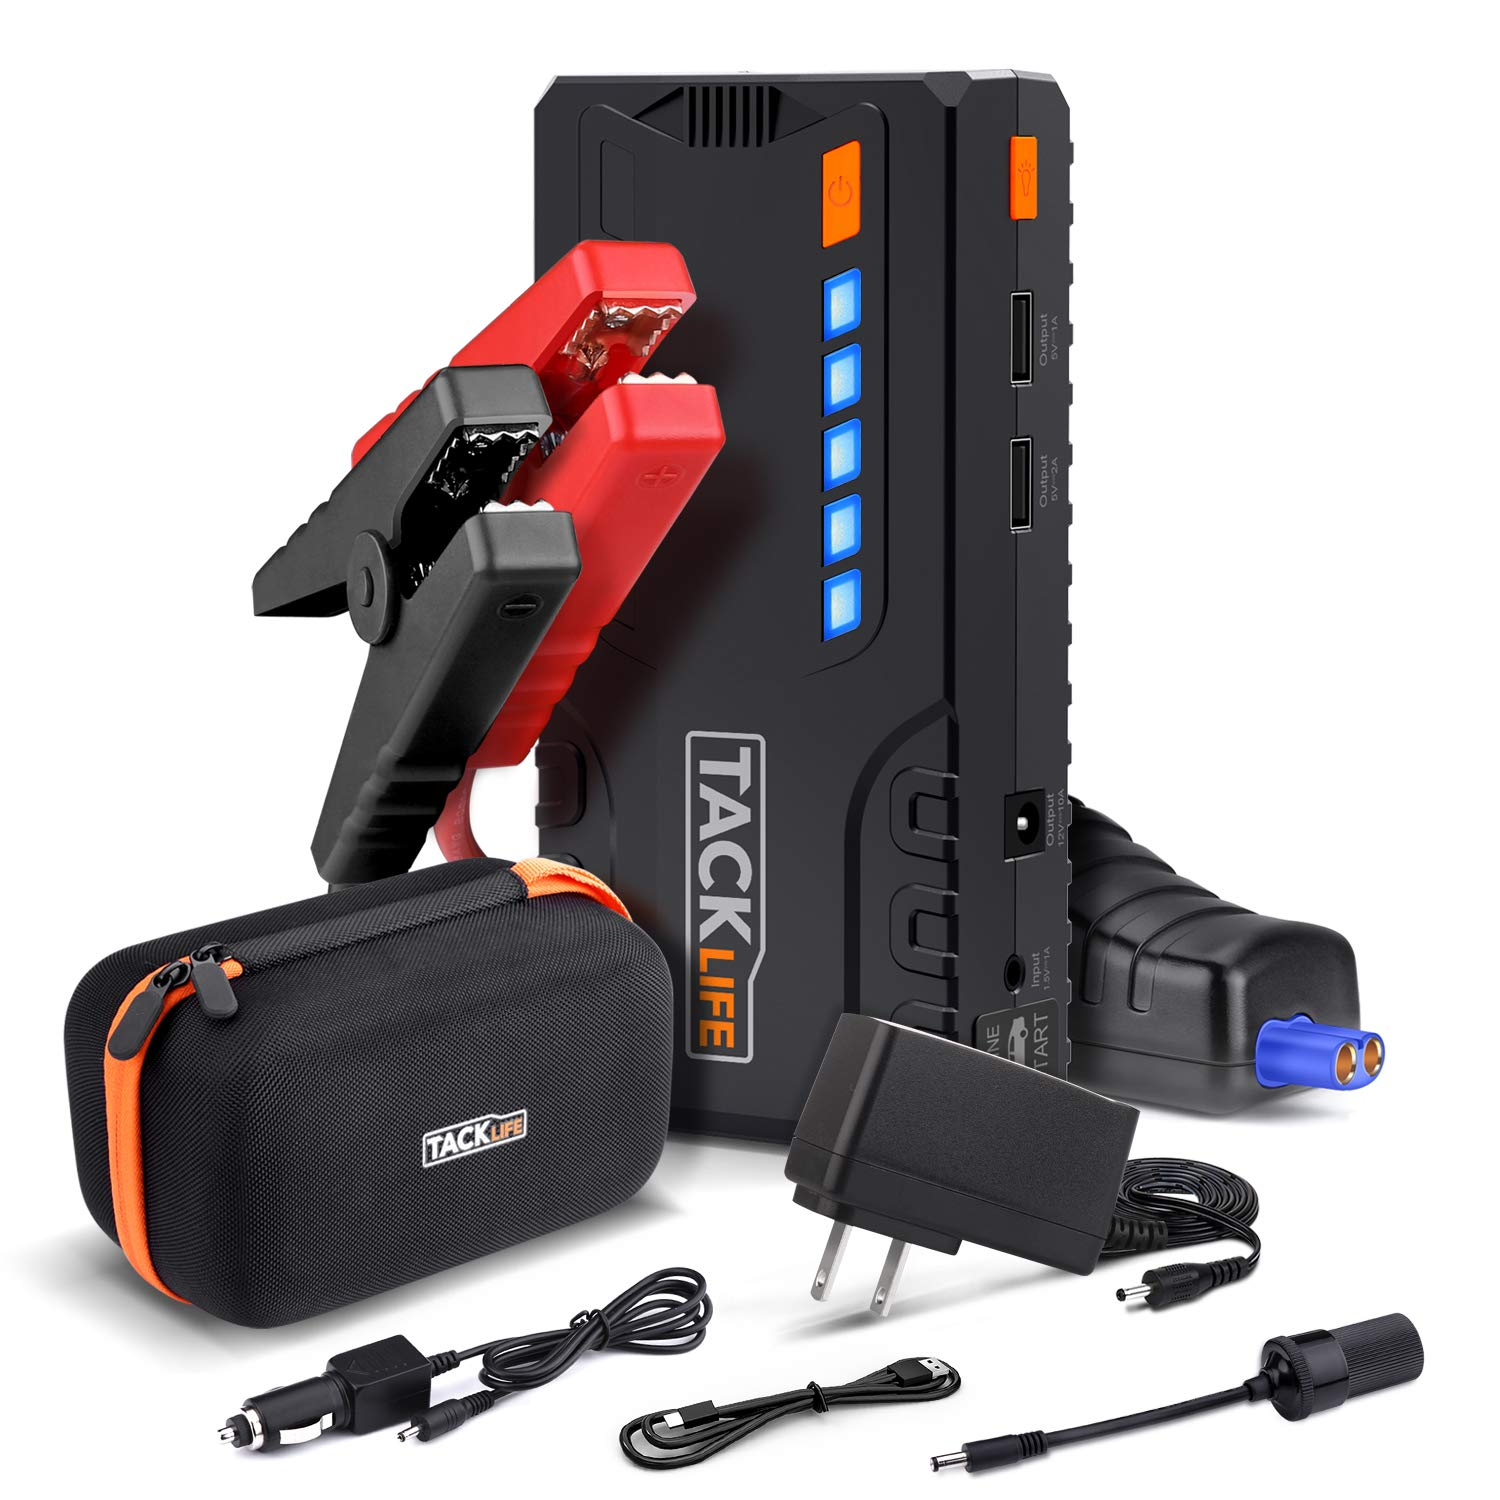 TACKLIFE T6 Car Jump Starter - 600A Peak 16500mAh, 12V Auto Battery Jumper with Quick-charge, Booster (up to 6.2l gas, 5.0l diesel), Portable Power Pack for Cars, Truck, SUV, UL Certified by TACKLIFE (Image #1)